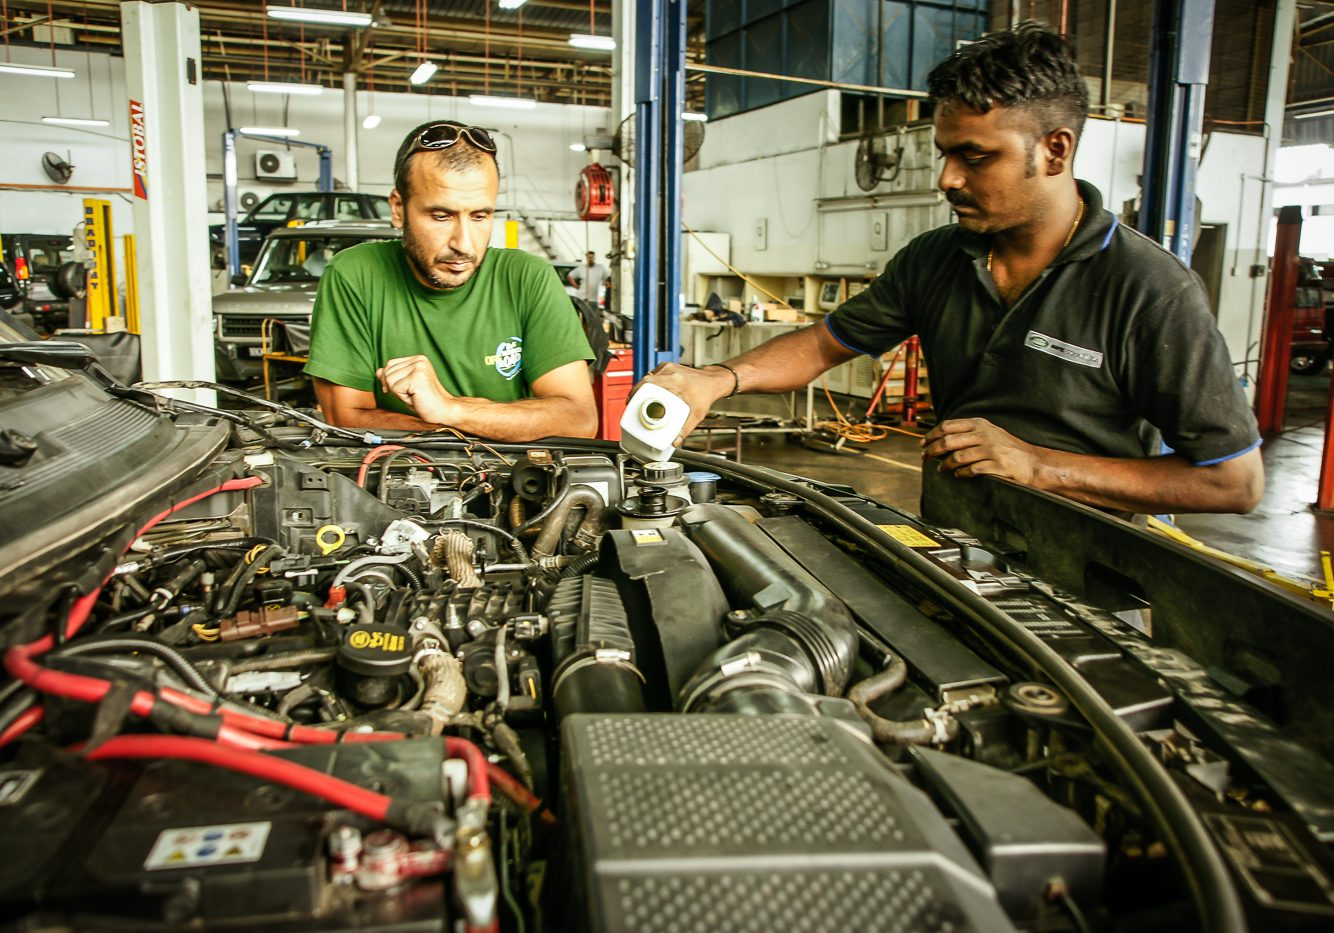 The mechanic who replaced the engine in Kuala Lumpur